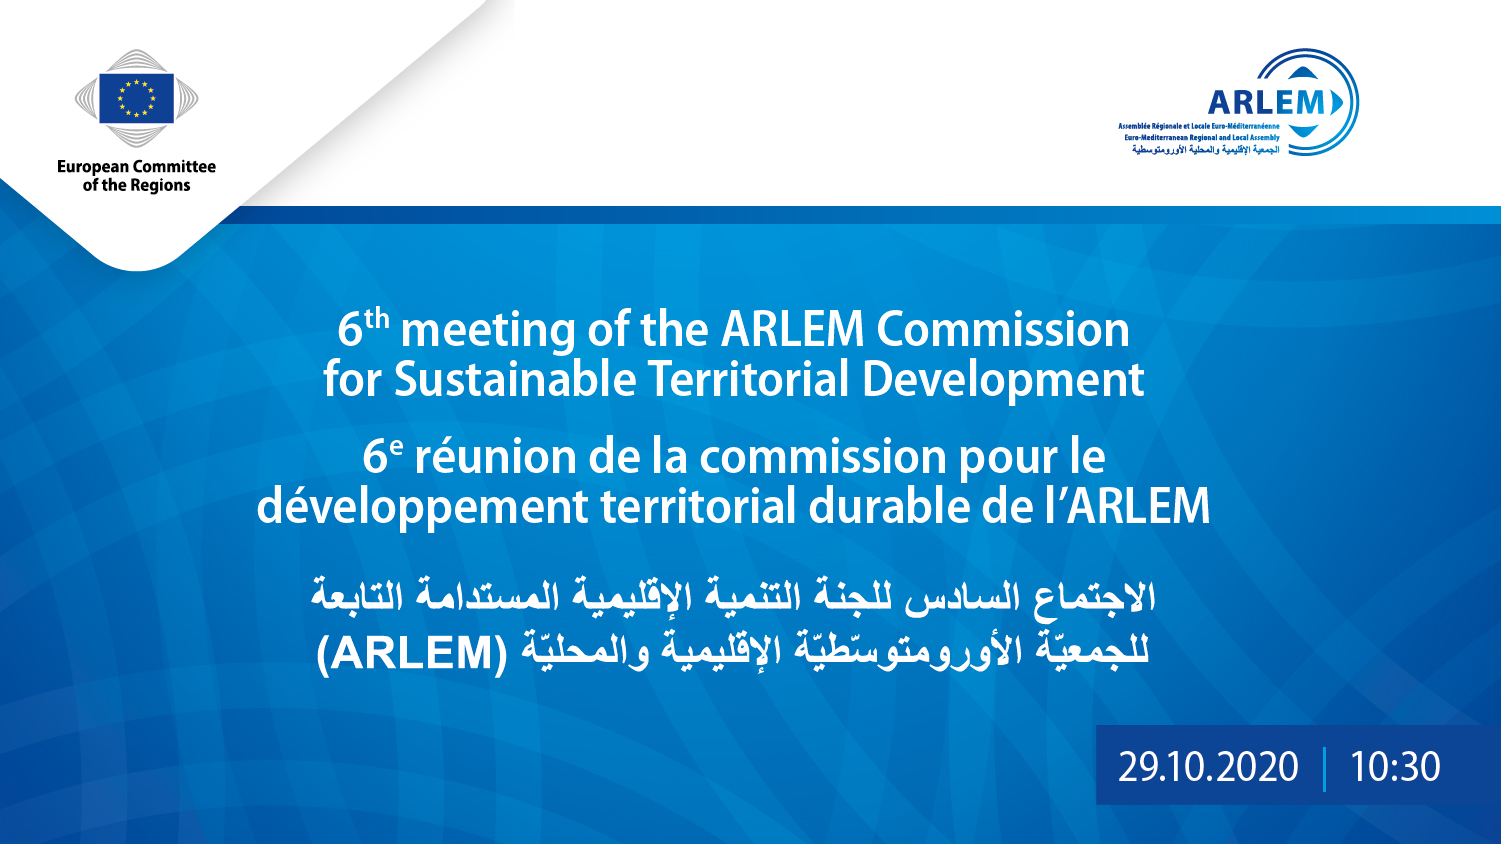 6th meeting of the Commission for Sustainable Territorial Development of ARLEM